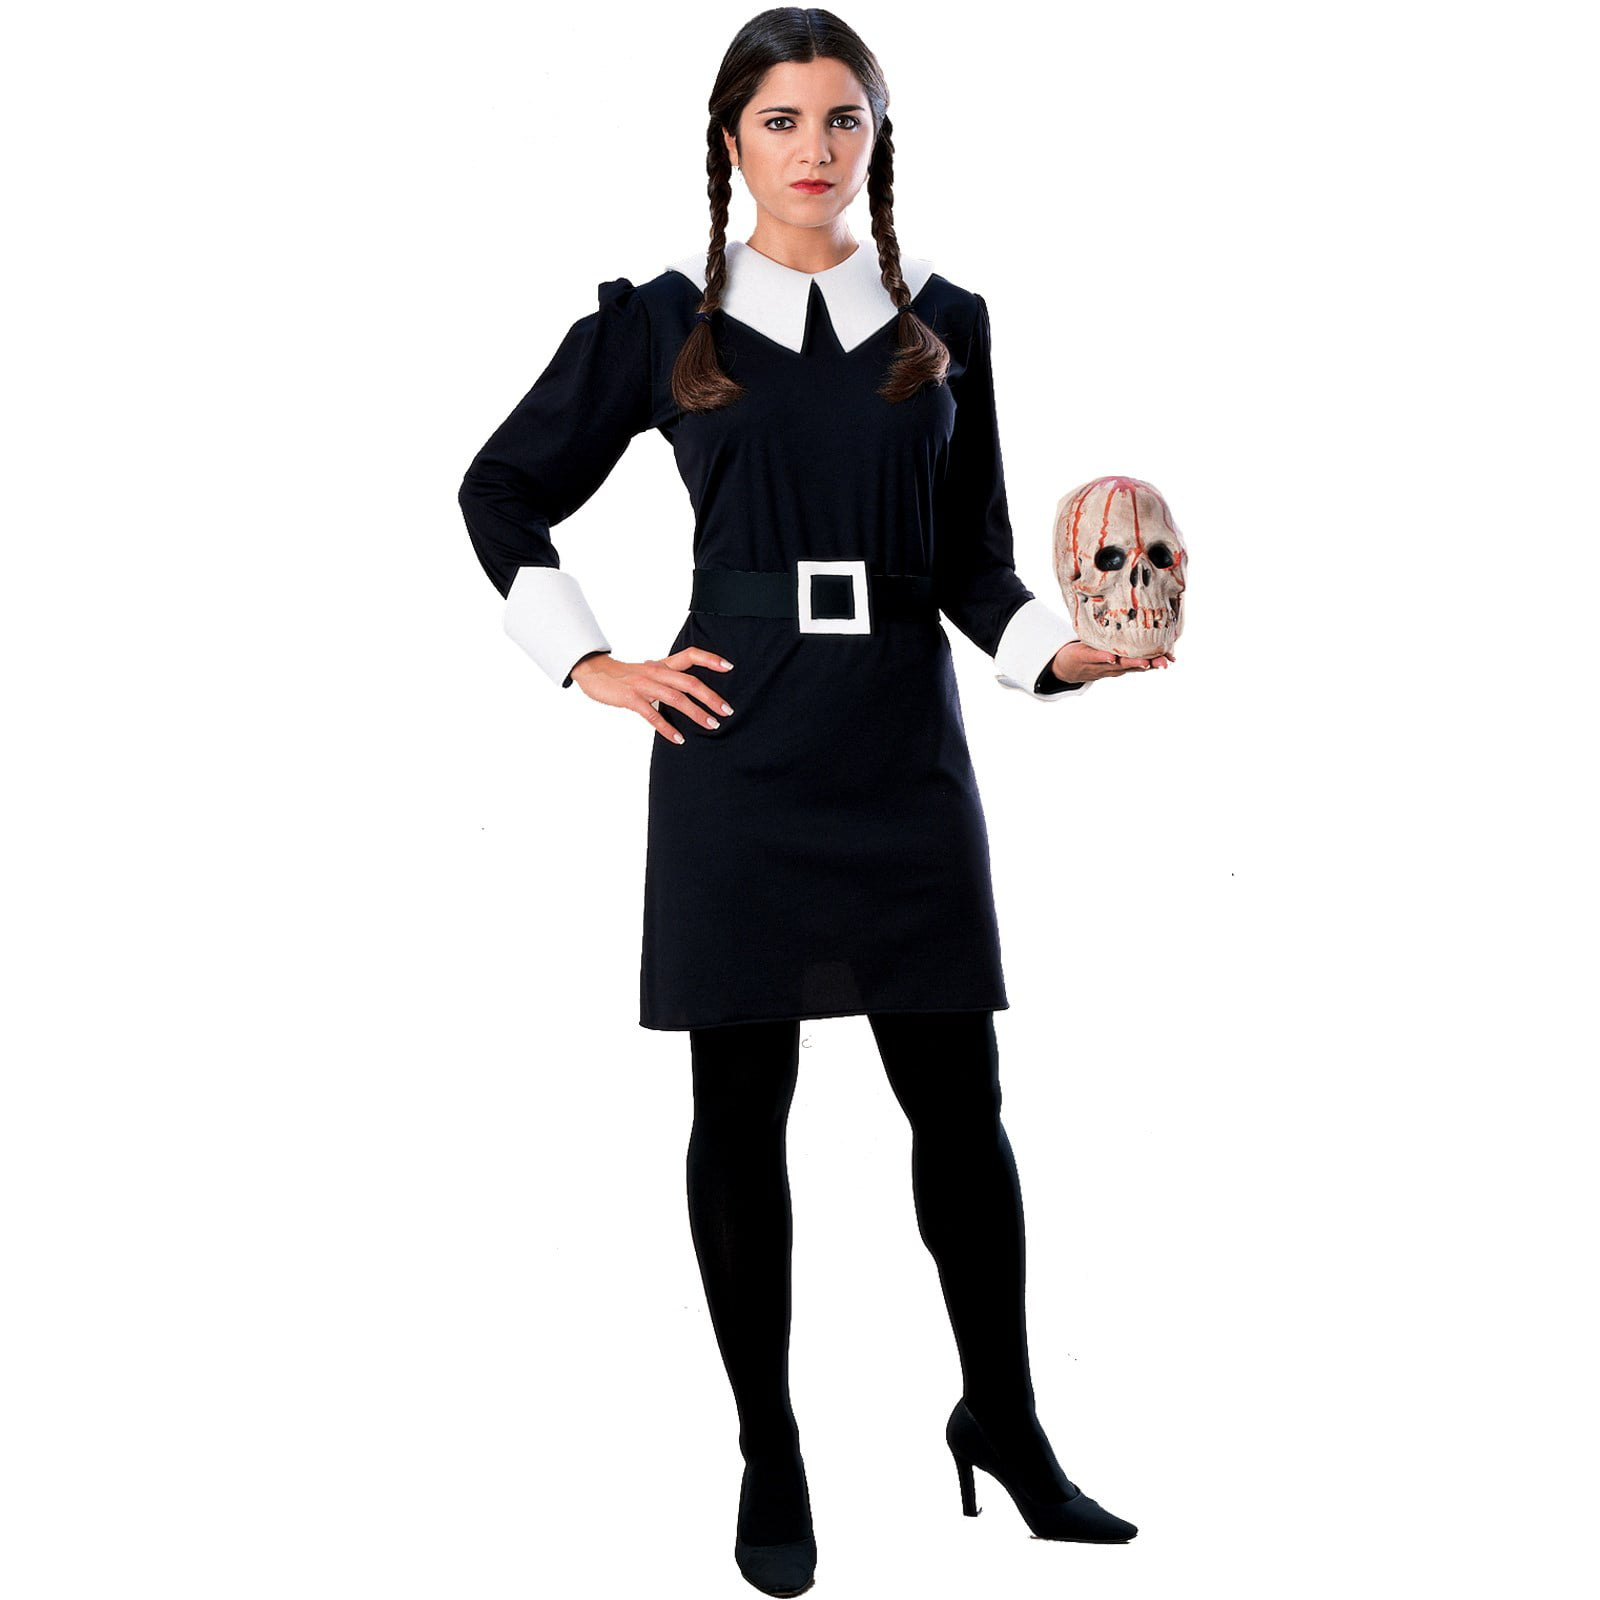 4pc Pugsley Addams Wednesday Fancy Dress Set Ladies Halloween Brother Kit Adult